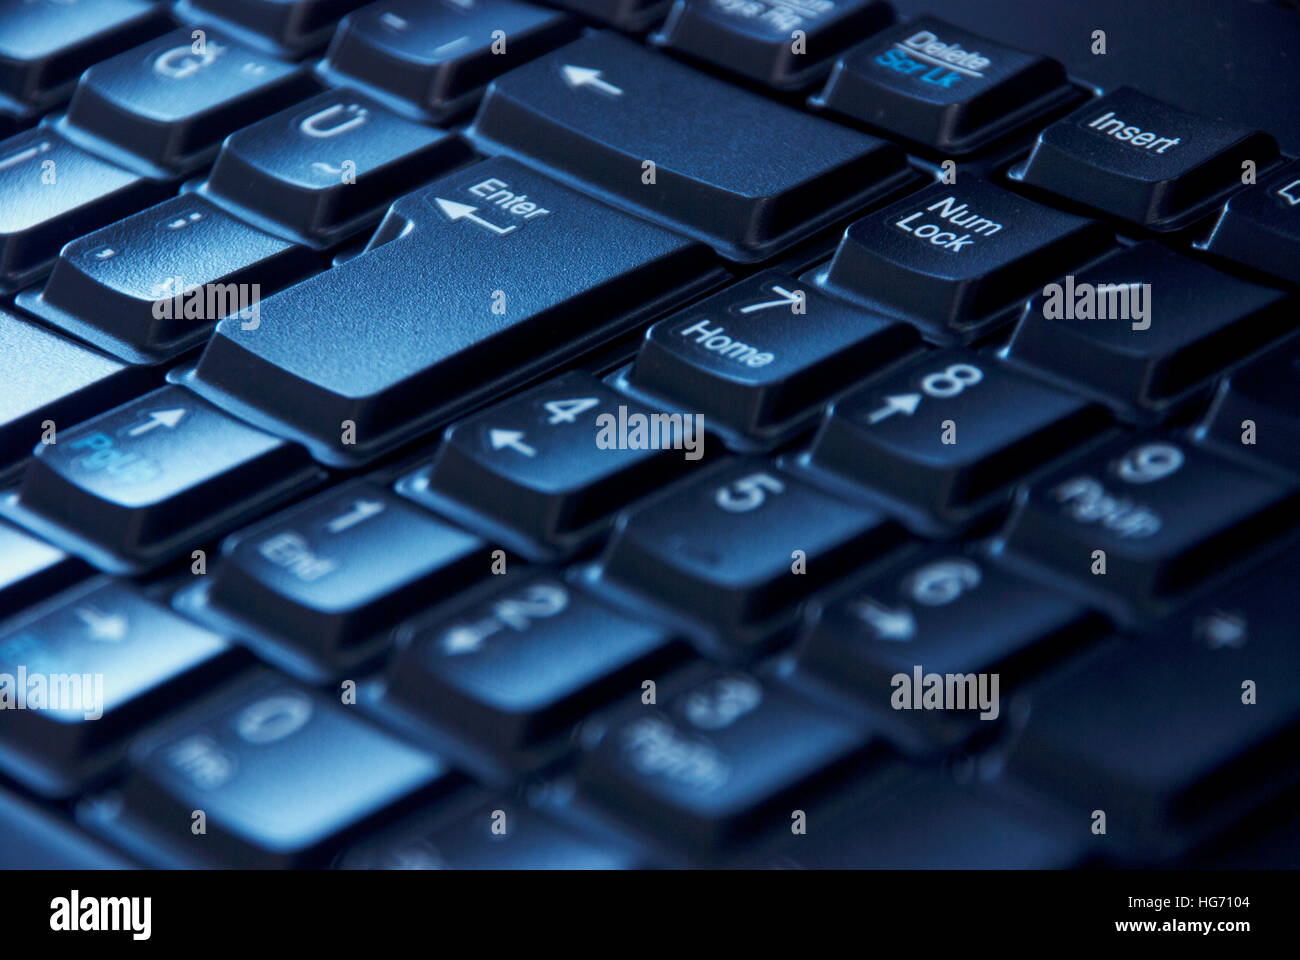 Close-up image of the numeric keypad digits on the computer keyboard - Stock Image